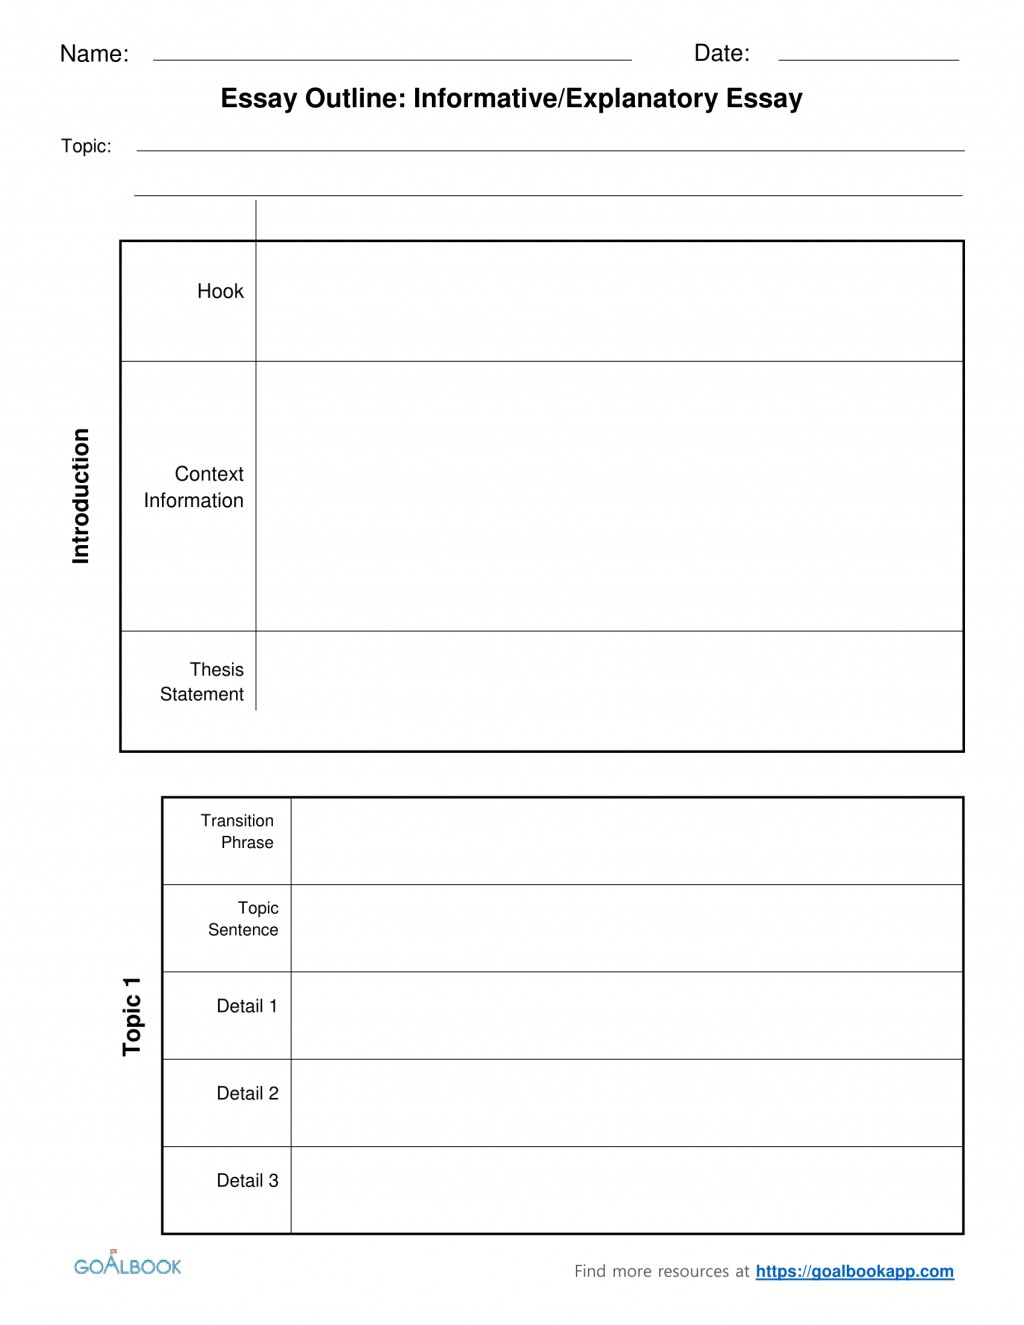 017 3informative Explanatoryessayoutlinechunked Informative Essay Outline Unforgettable 5th Grade Examples Large